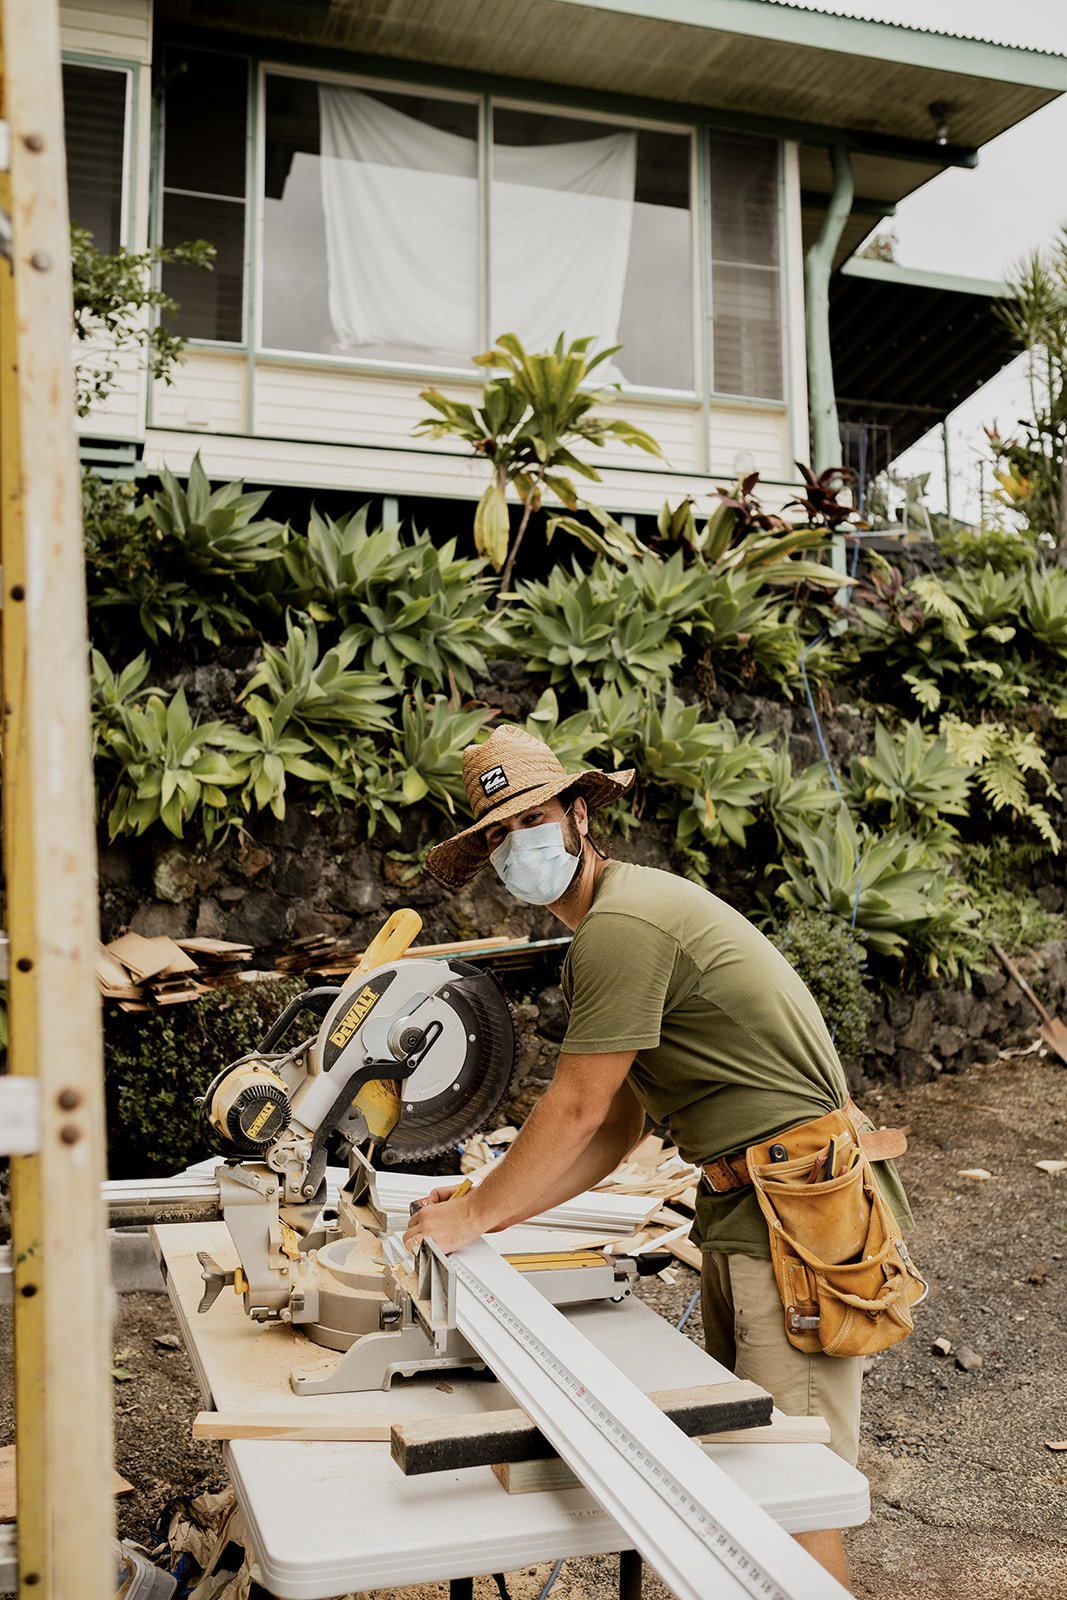 Taylor considered the project an experiment to test out ideas for improving the design of tiny homes. A big focus became adding more windows and leaving spaces open rather than filling every nook and corner.  Photo 3 of 14 in A Hawaii-Based Couple Build a Luminous Tiny House in Just 25 Days